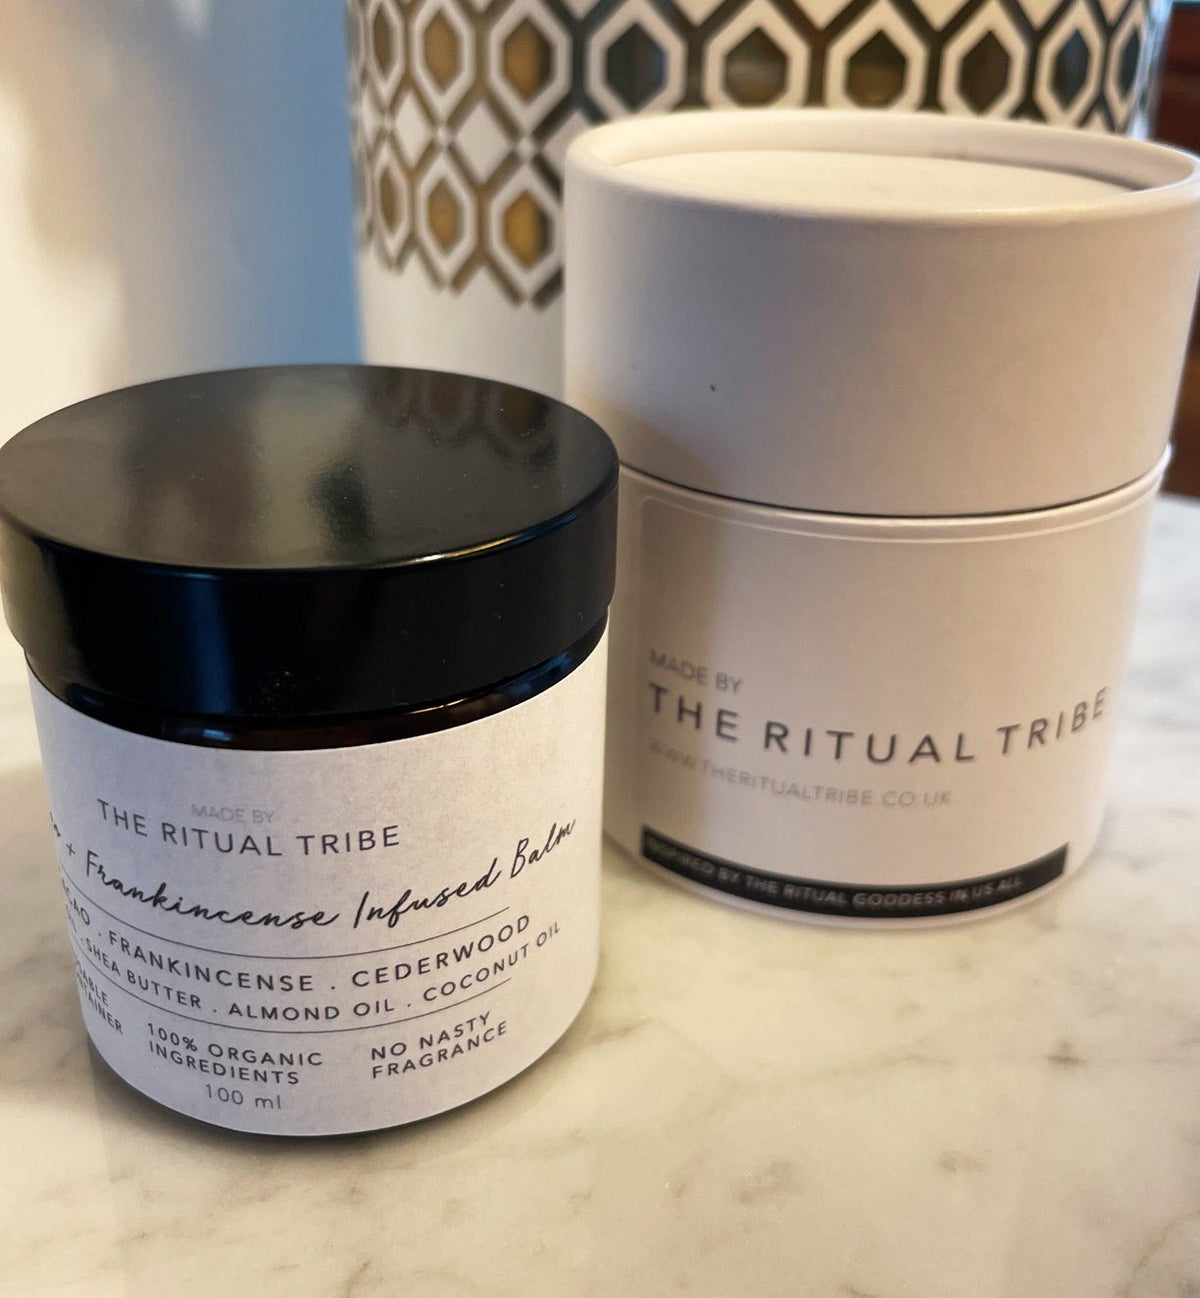 Cacao + Frankincense Infused Balm The Ritual Tribe